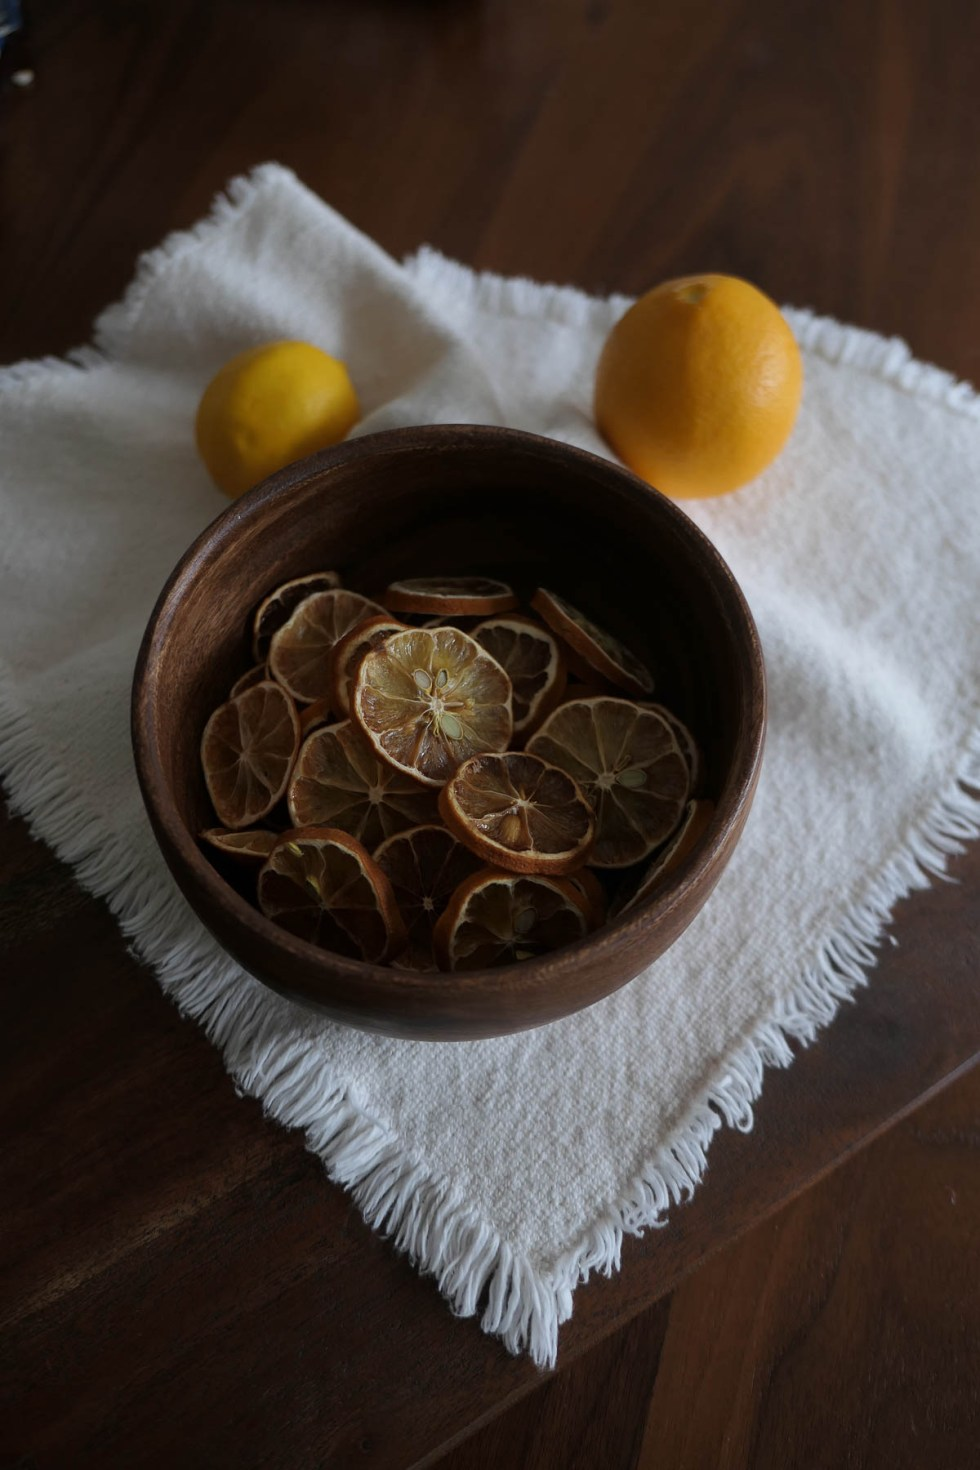 Dried Lemon Slices in Bowl